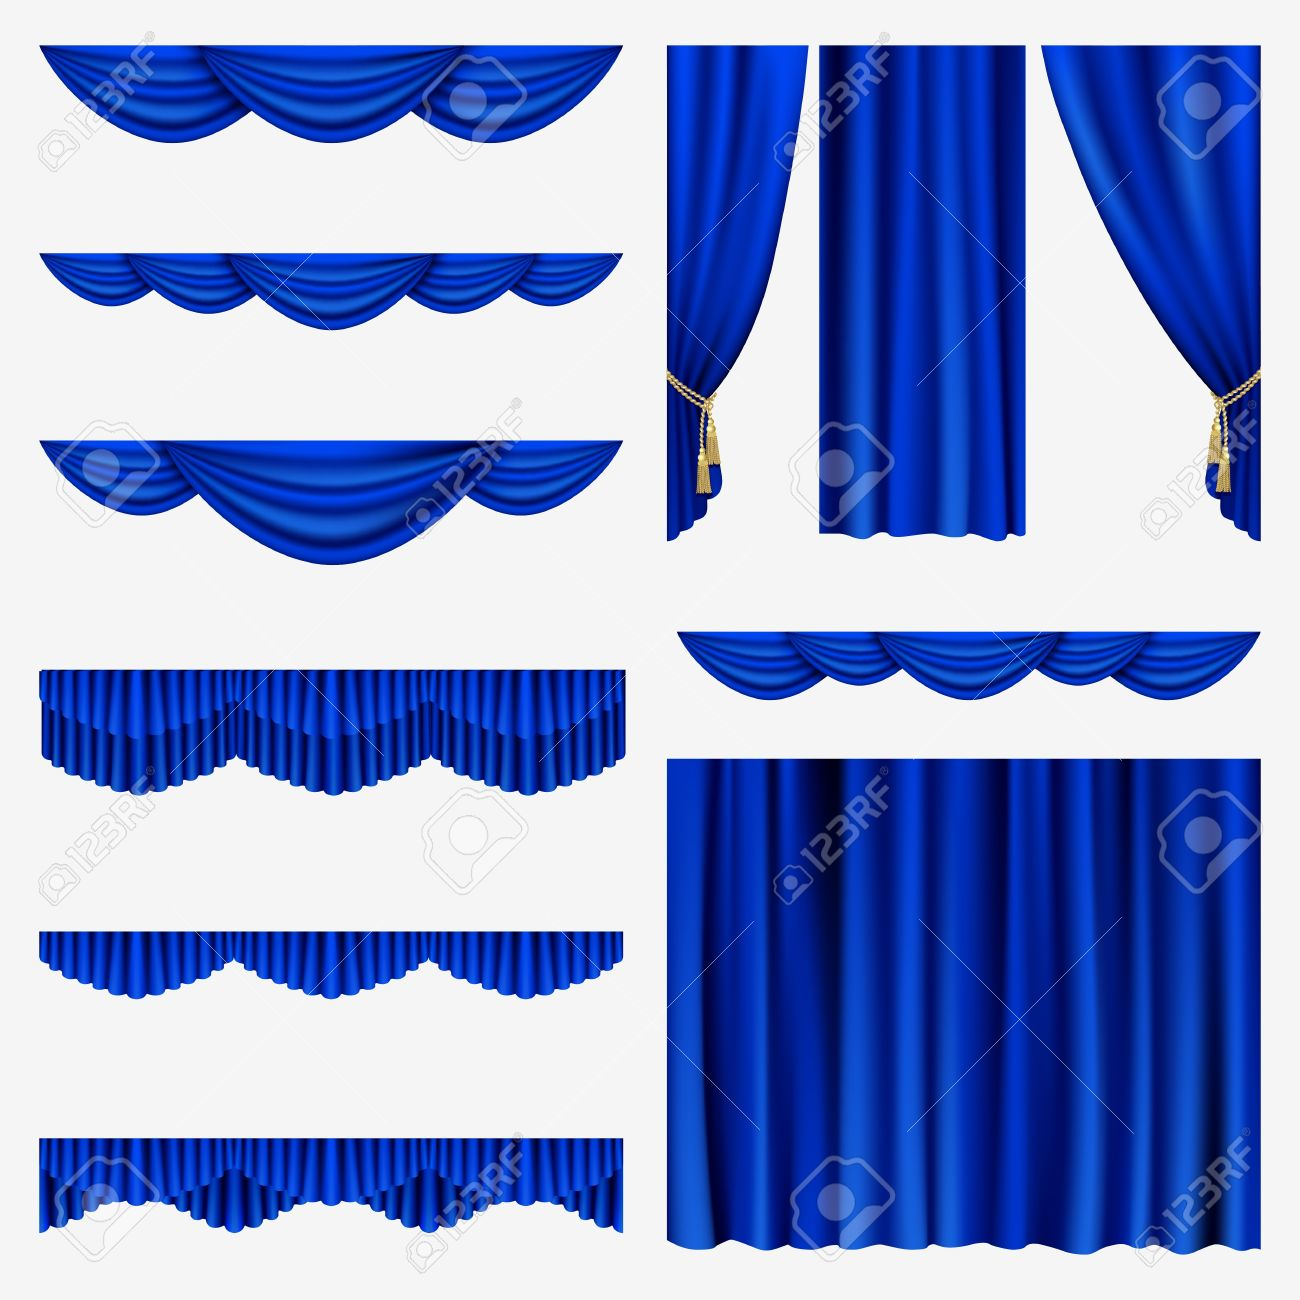 Set Of Blue Curtains To Theater Stage Mesh Royalty Free Cliparts Vectors And Stock Illustration Image 17880194